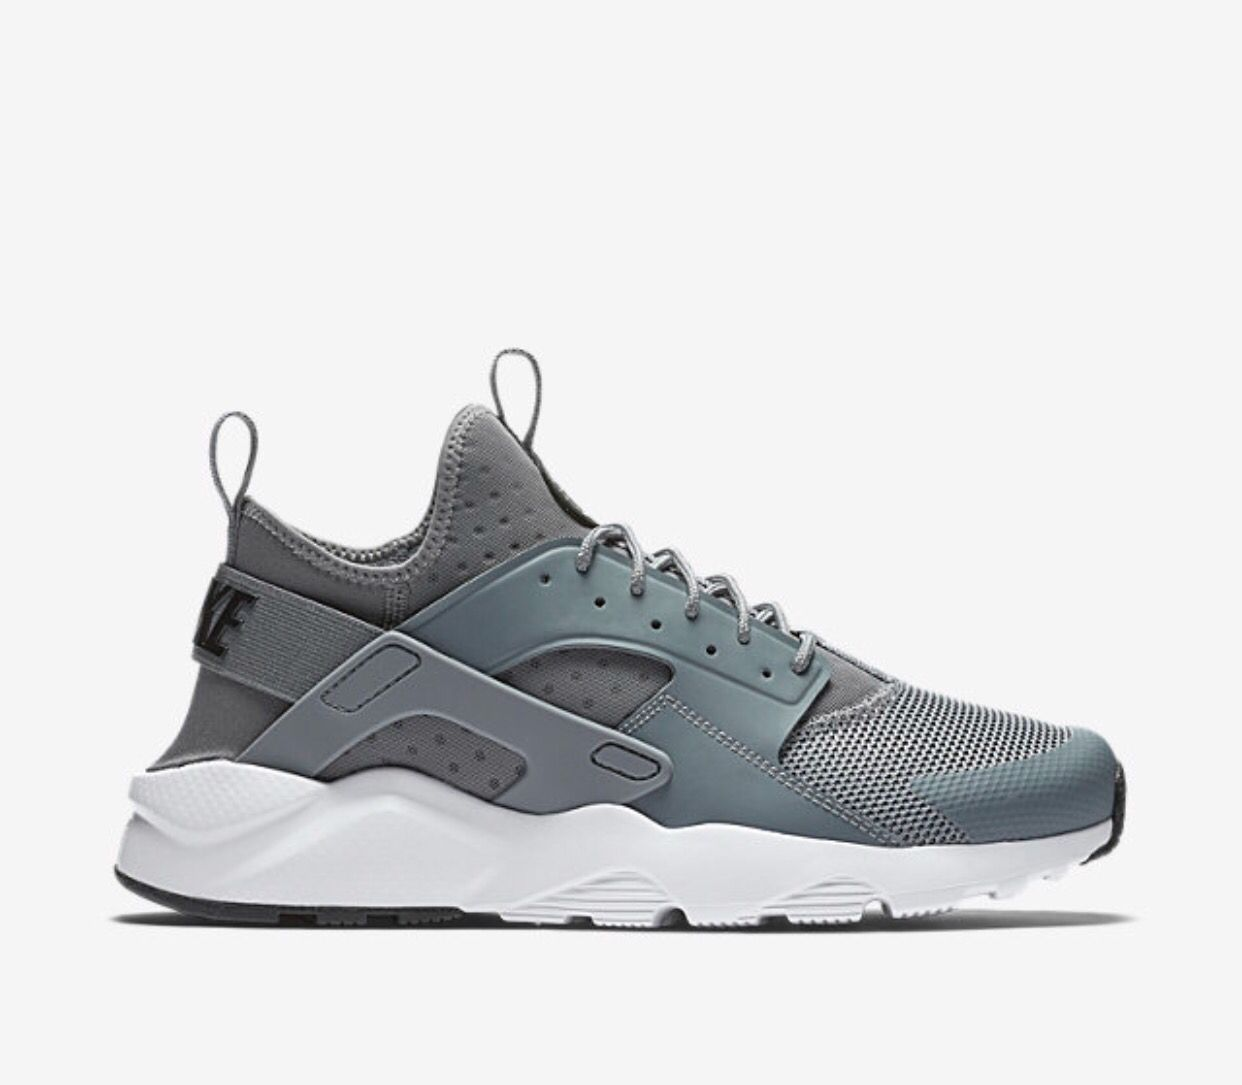 lowest price dde4a 617c6 Nike Air Hurache Hurraches Nike, Ultra Shoes, Huaraches Shoes, Vans Shoes,  Shoes